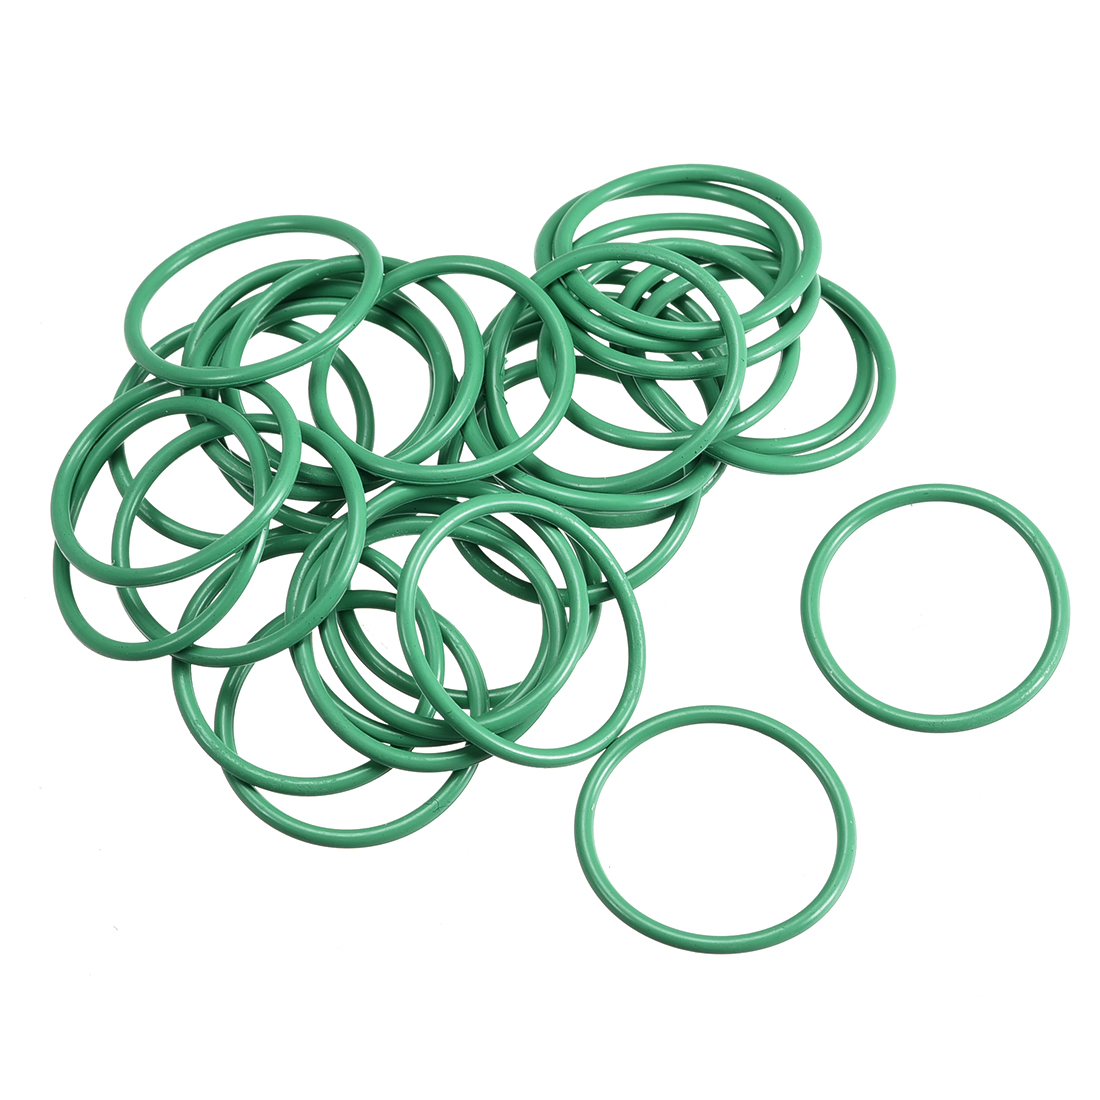 30pcs 21mm x 1.5mm Size Mechanical Rubber O Ring Oil Seal Gaskets Green